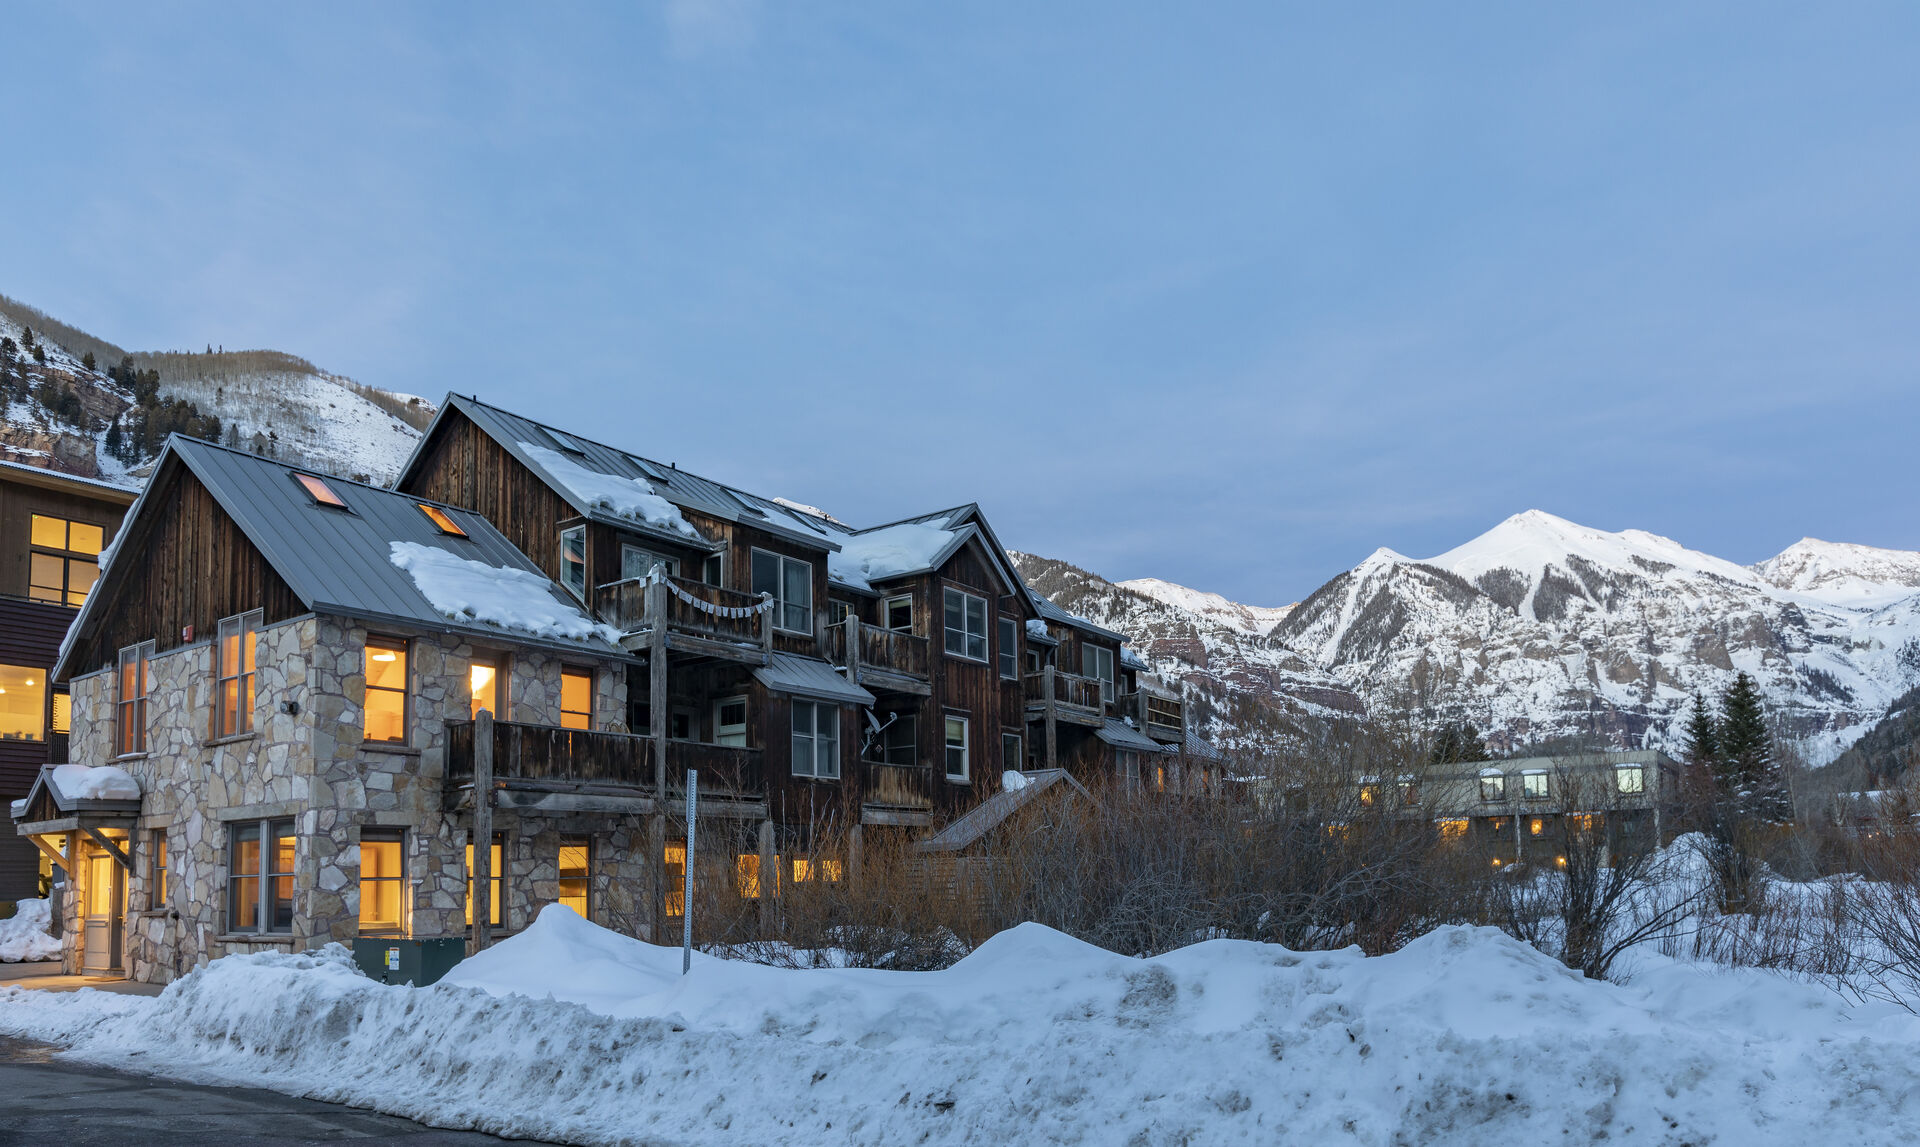 A snowy view of the exterior of this 3 bedroom condo in Telluride.